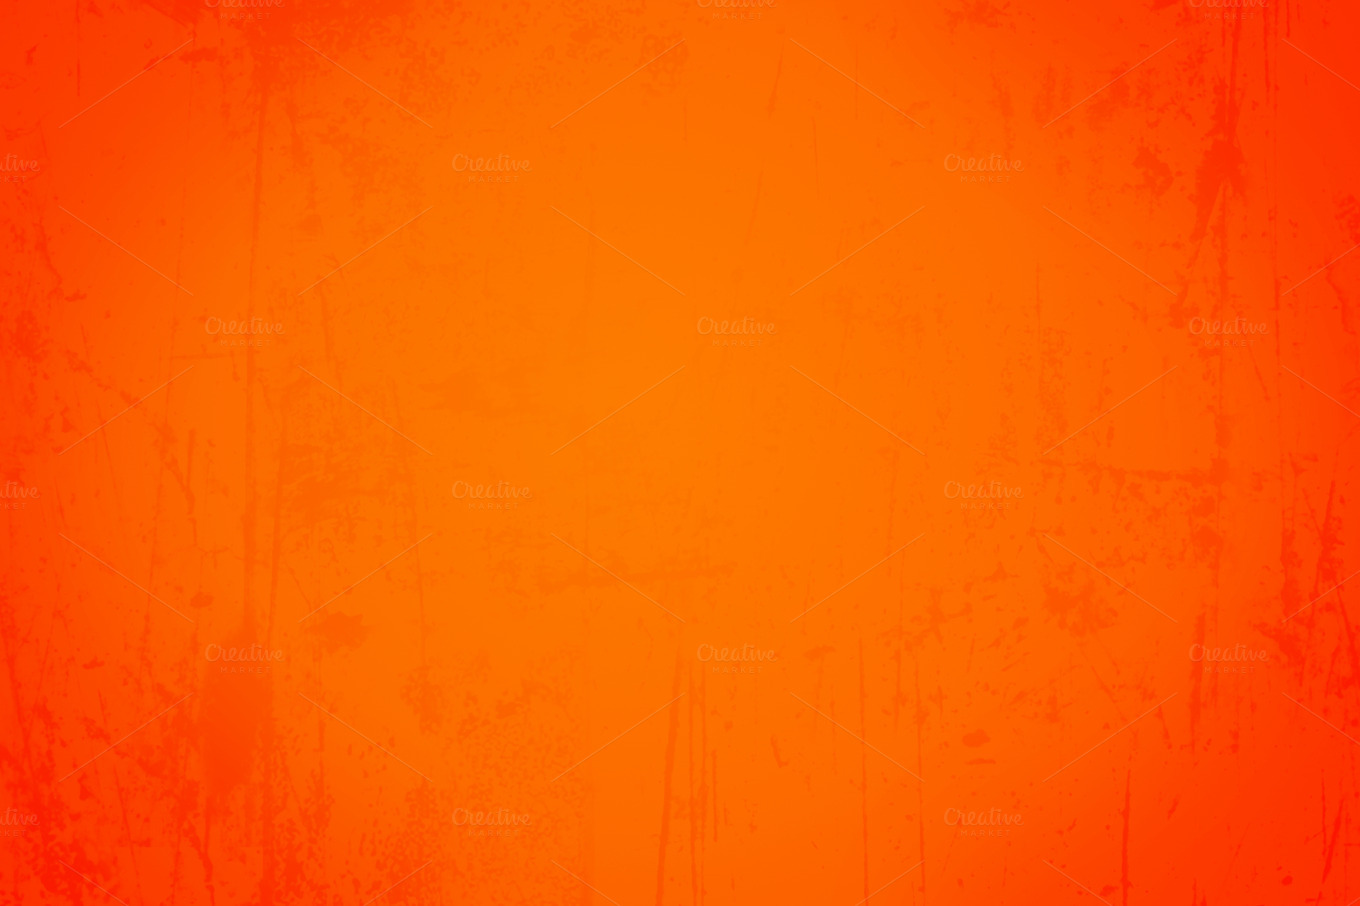 Cool Orange Backgrounds 1360x906